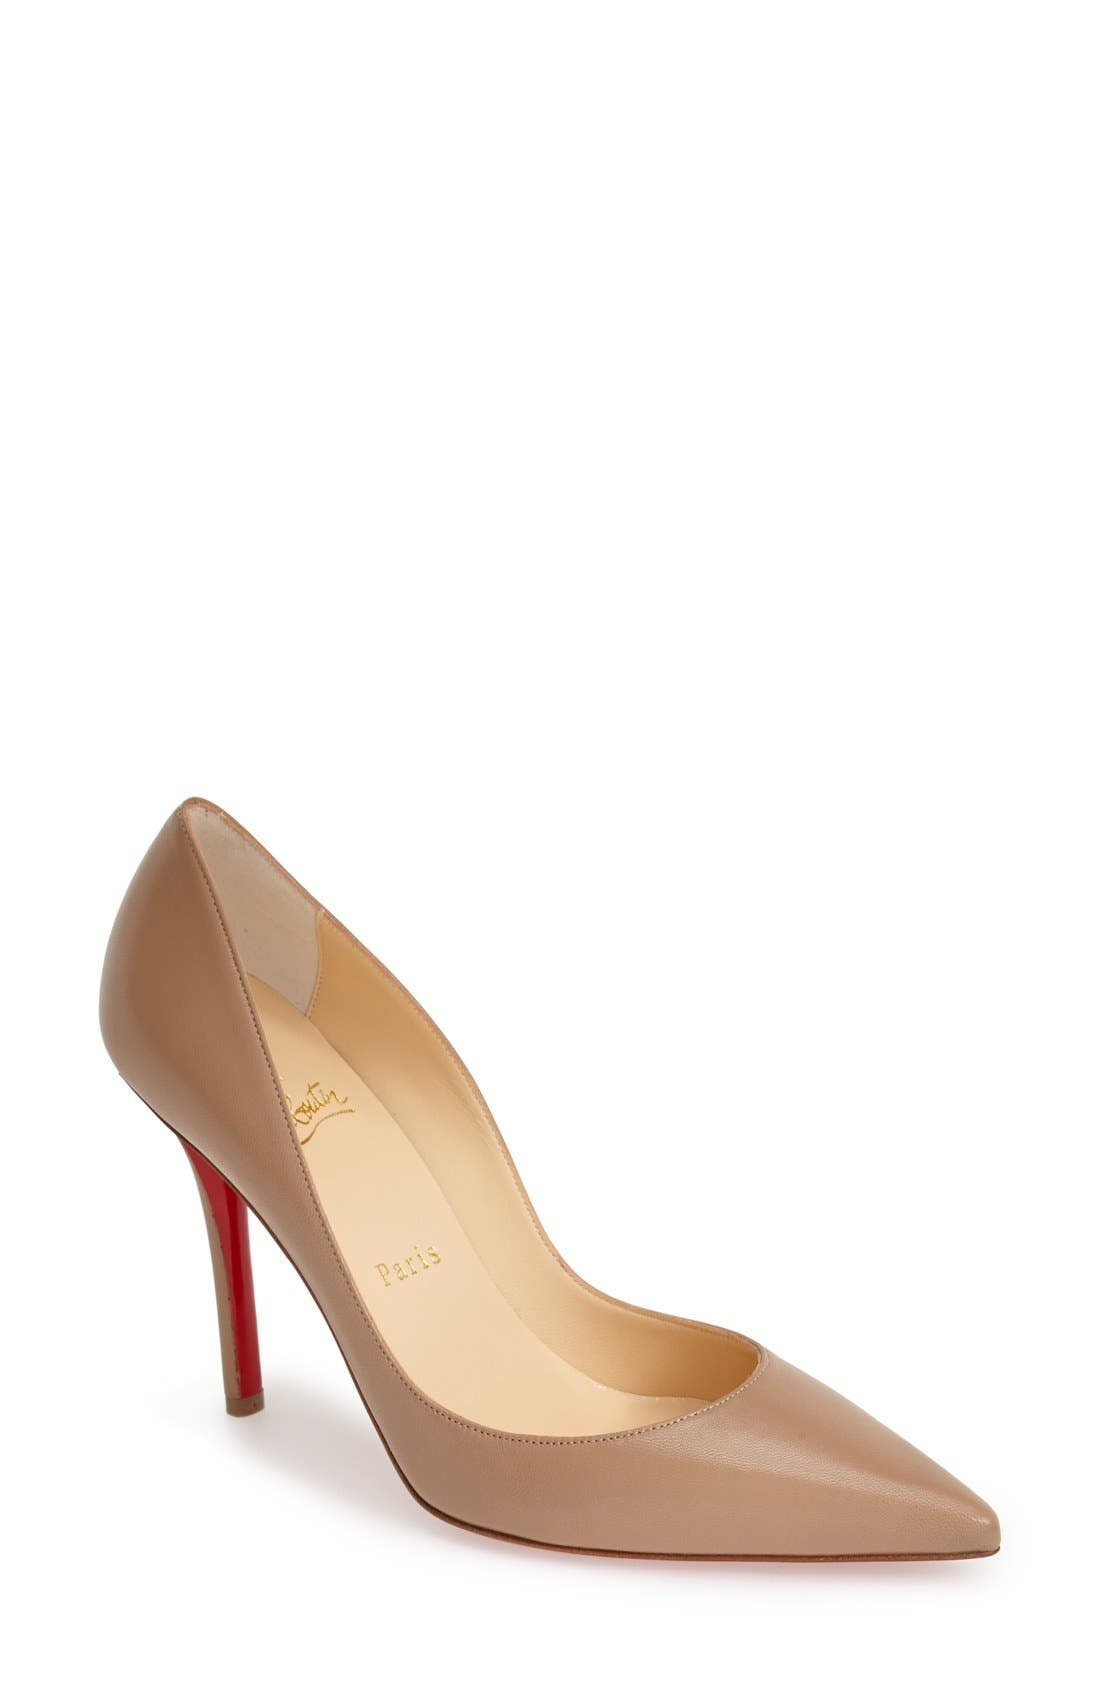 'Apostrophy' Pointy Toe Pump,                             Main thumbnail 4, color,